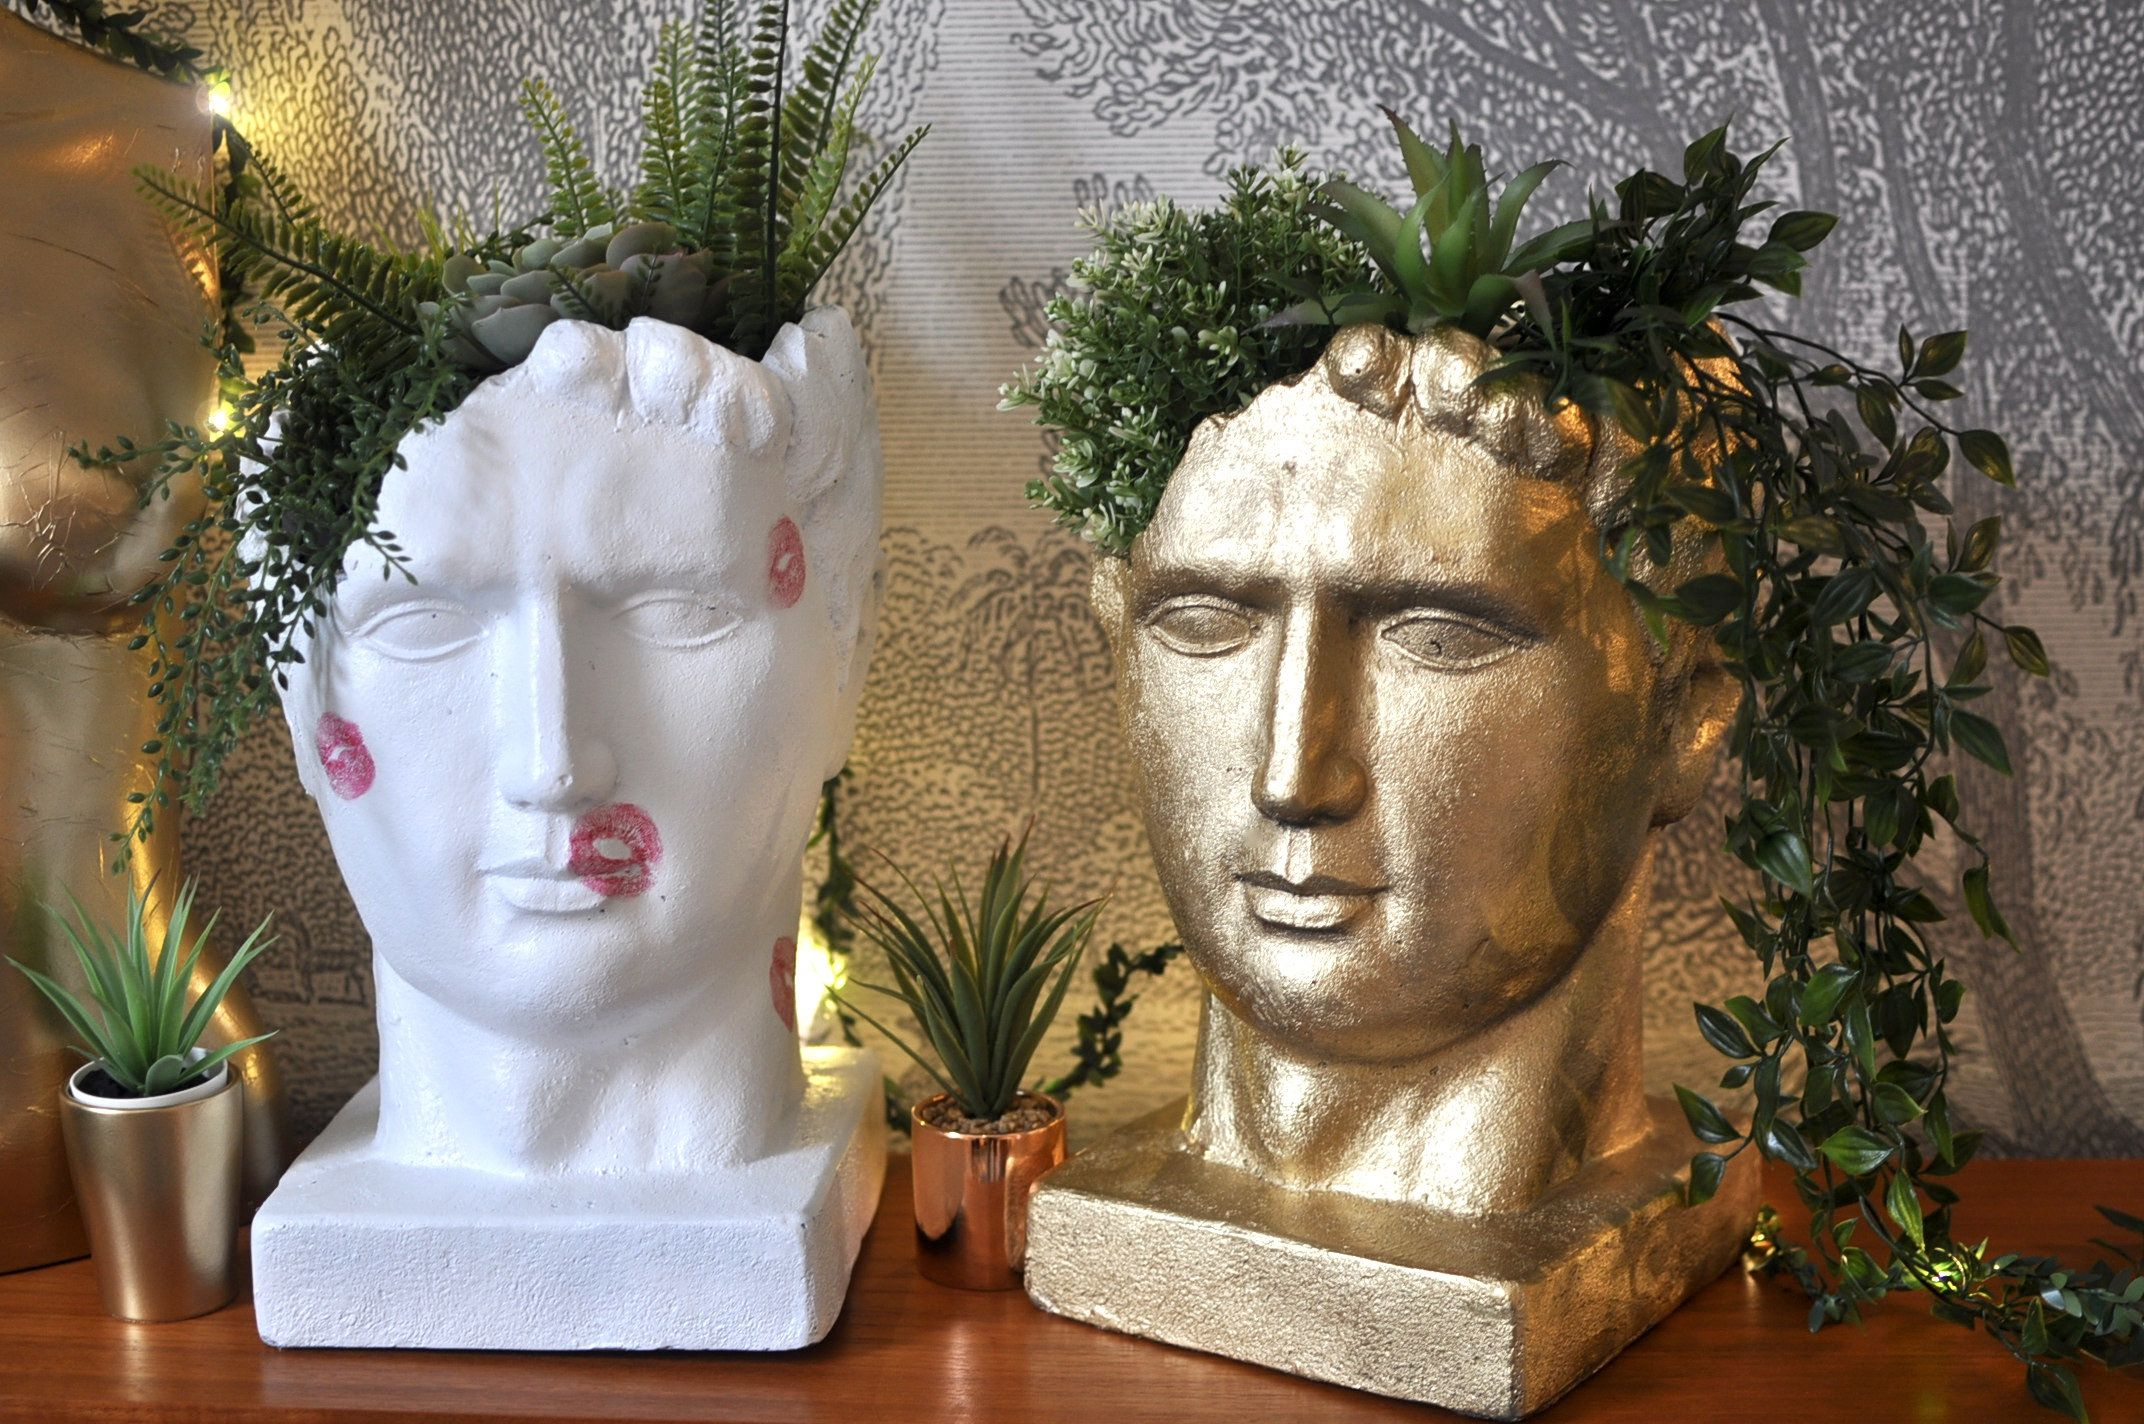 Photo of Quirky Upcycled Gold Leaf Roman Head Planter, Unusual Home Decor, Eclectic Indoor Outdoor Planter for Faux Foliage.